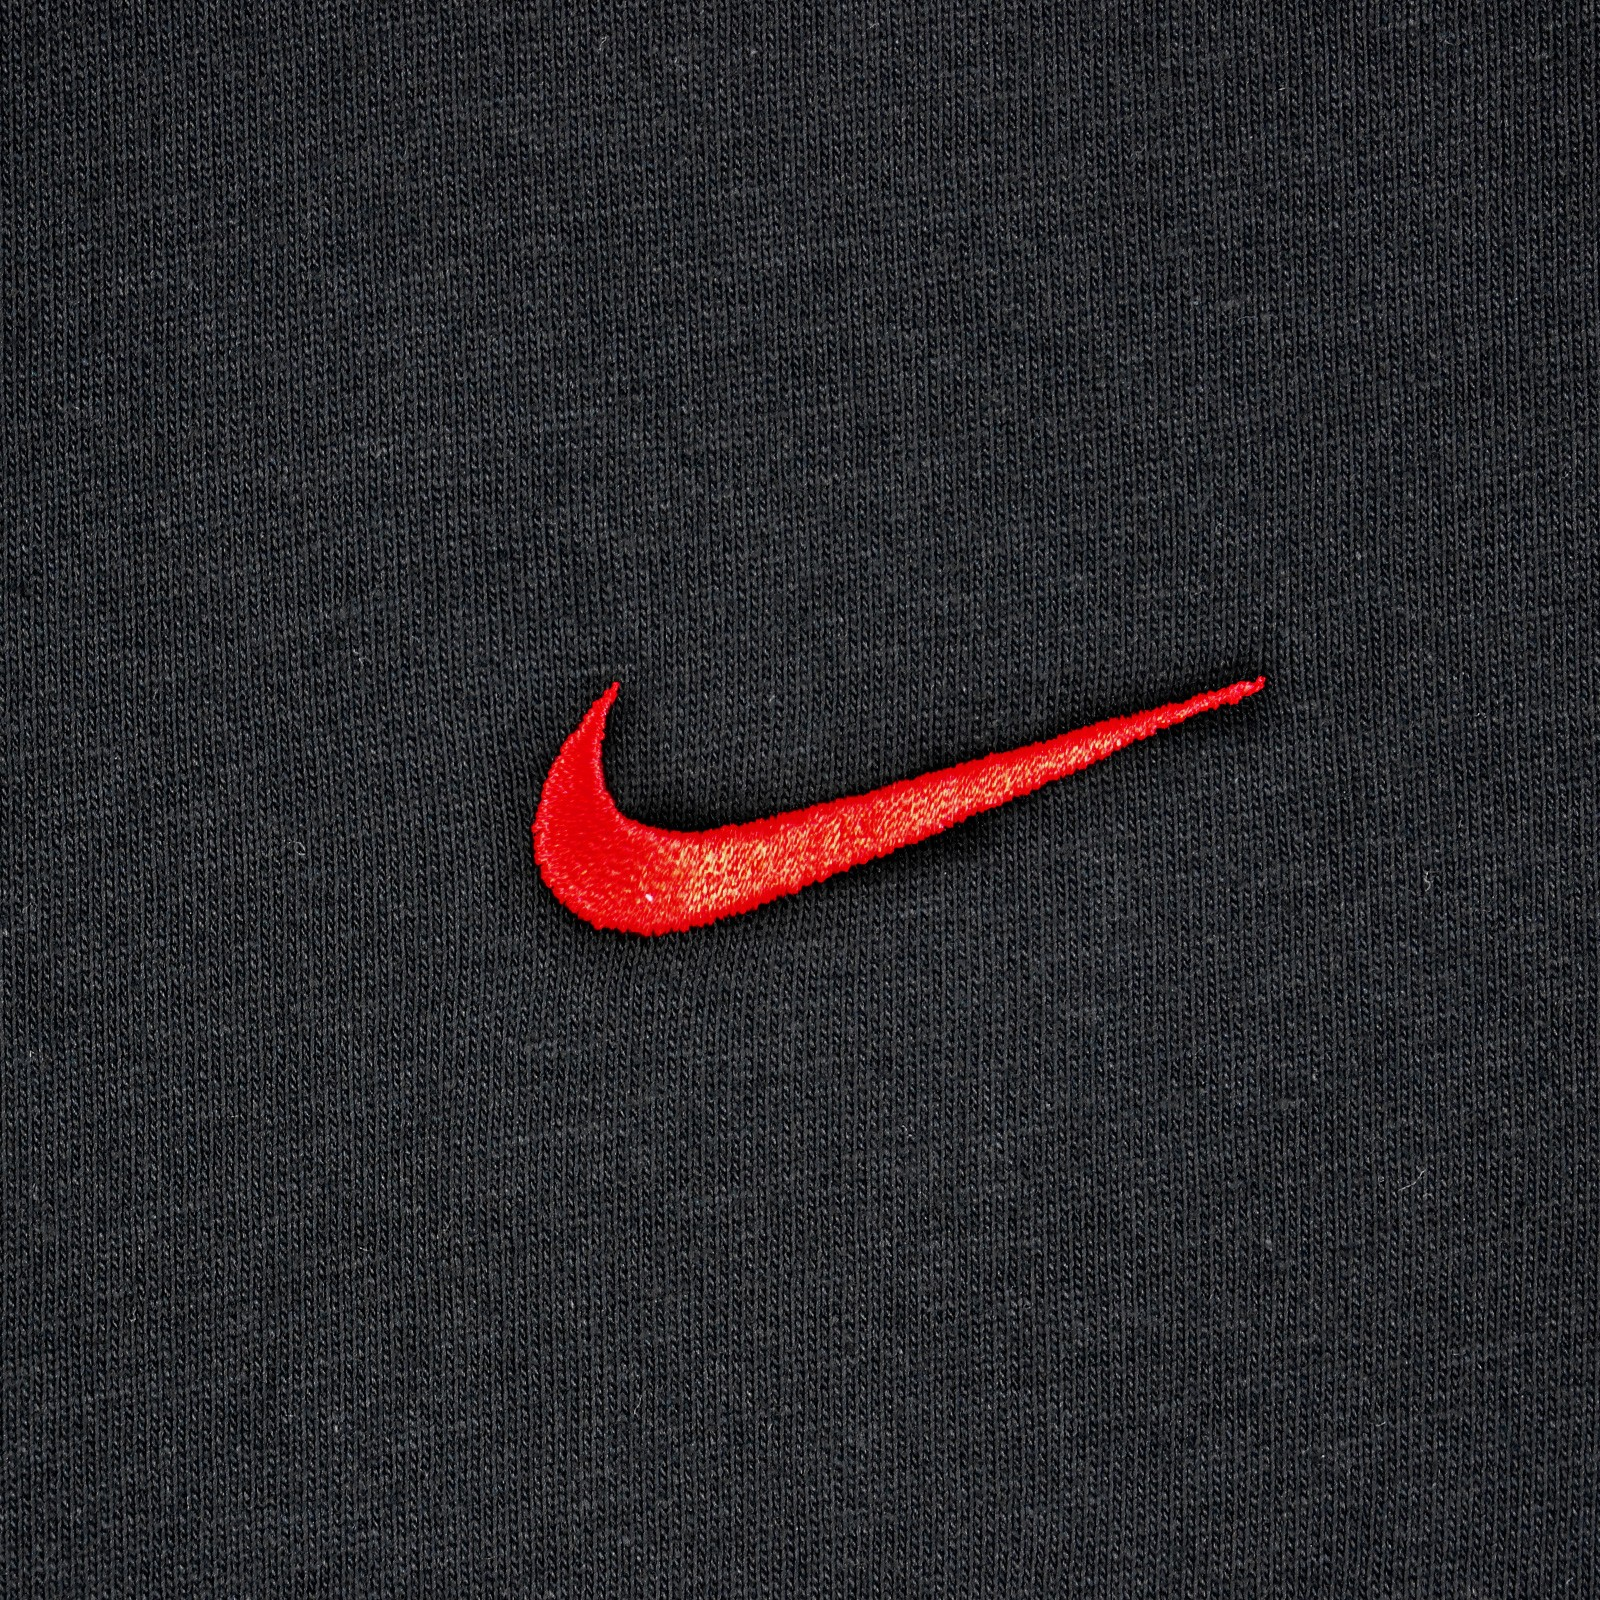 Details About Nike Basic Swoosh Tee Men S Casual Sports Cotton T Shirt Tennis Black Red S